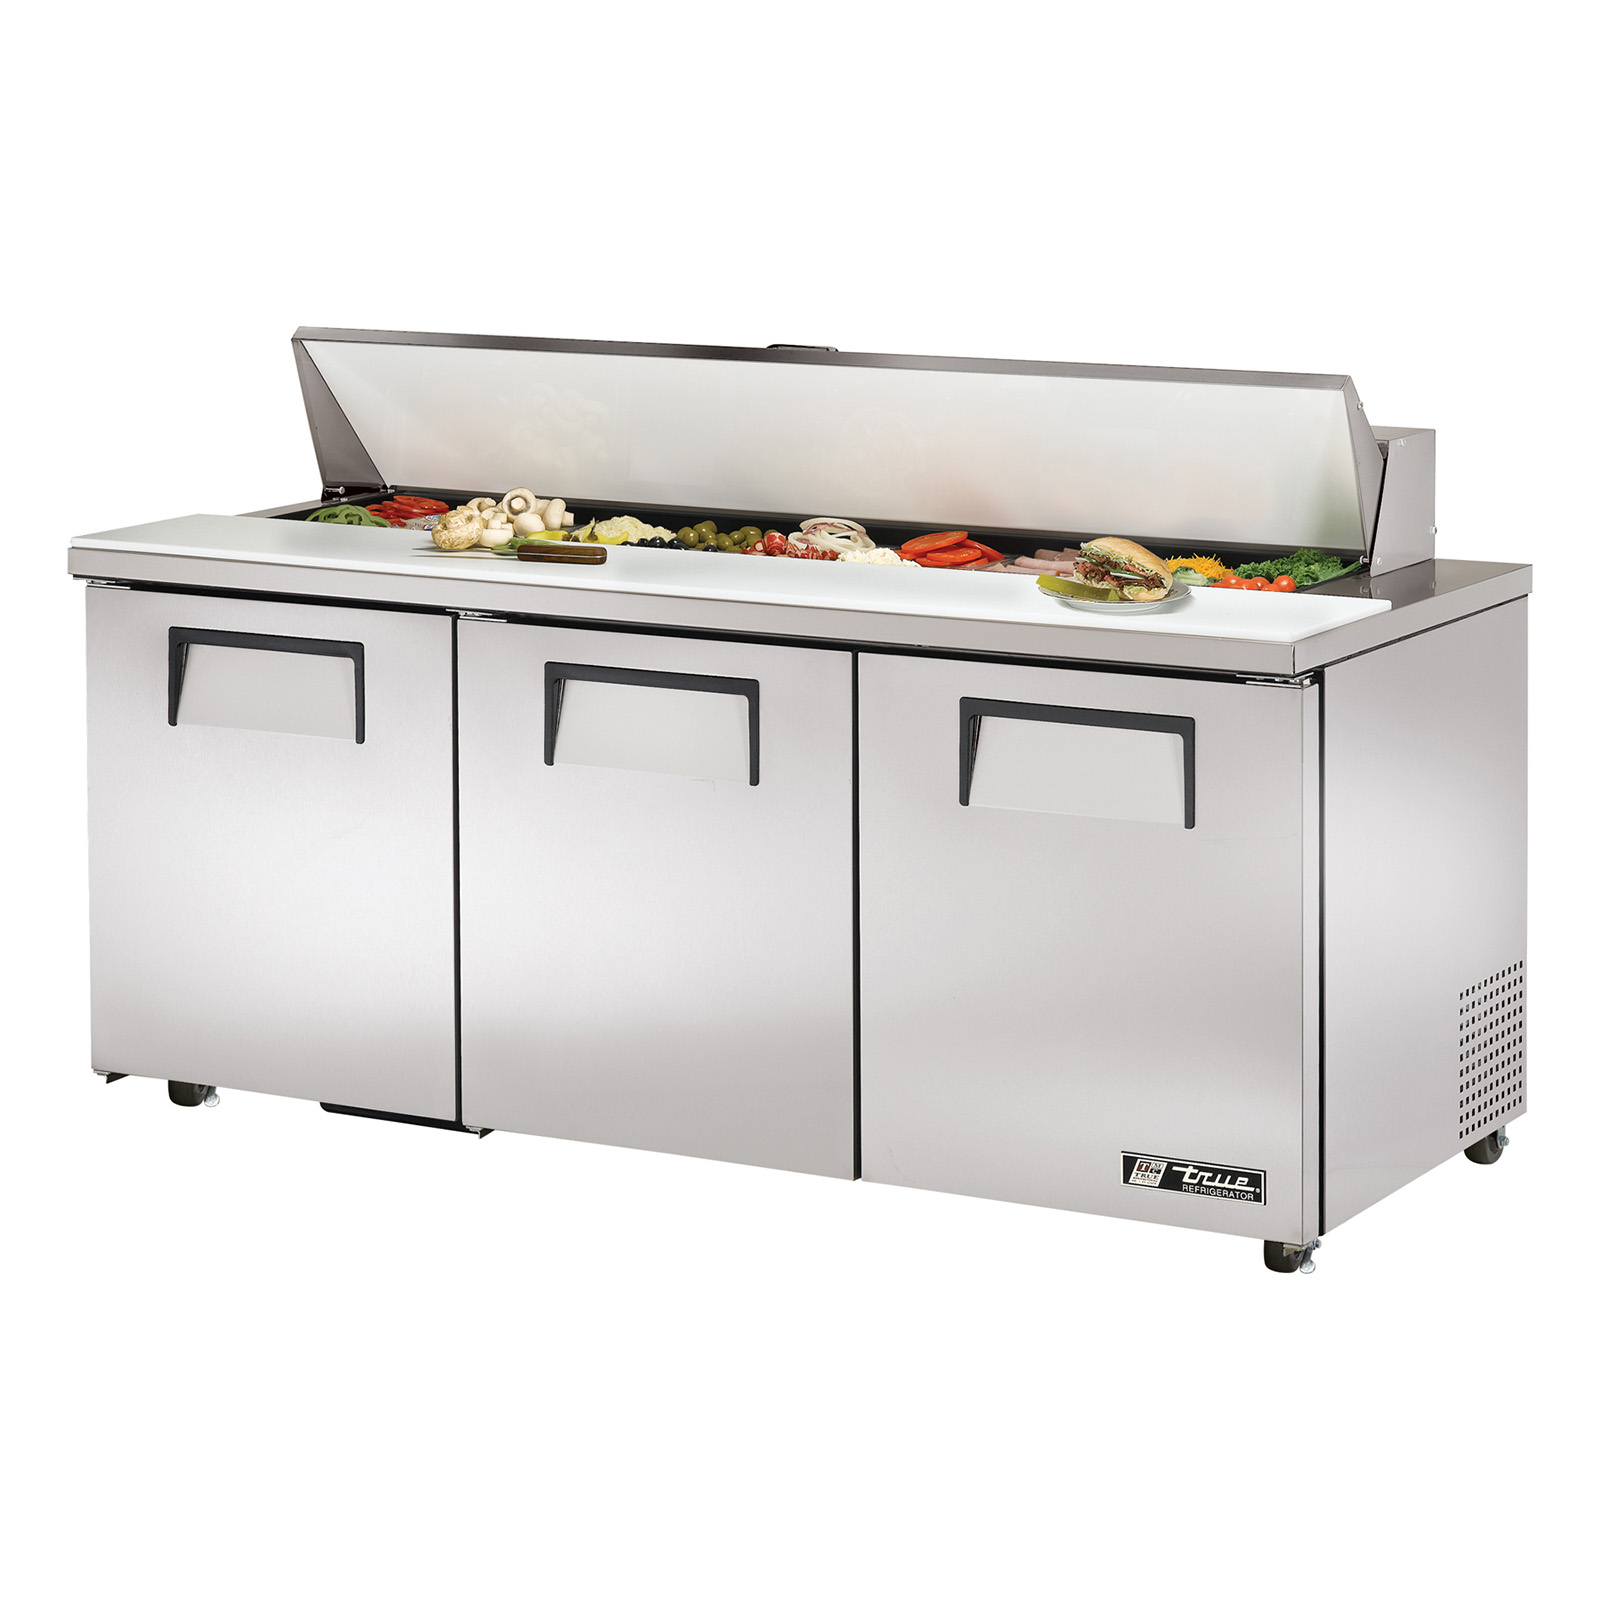 TSSU-72-18-ADA True - ADA Compliant Sandwich/Salad Unit (18) 1/6 size (4